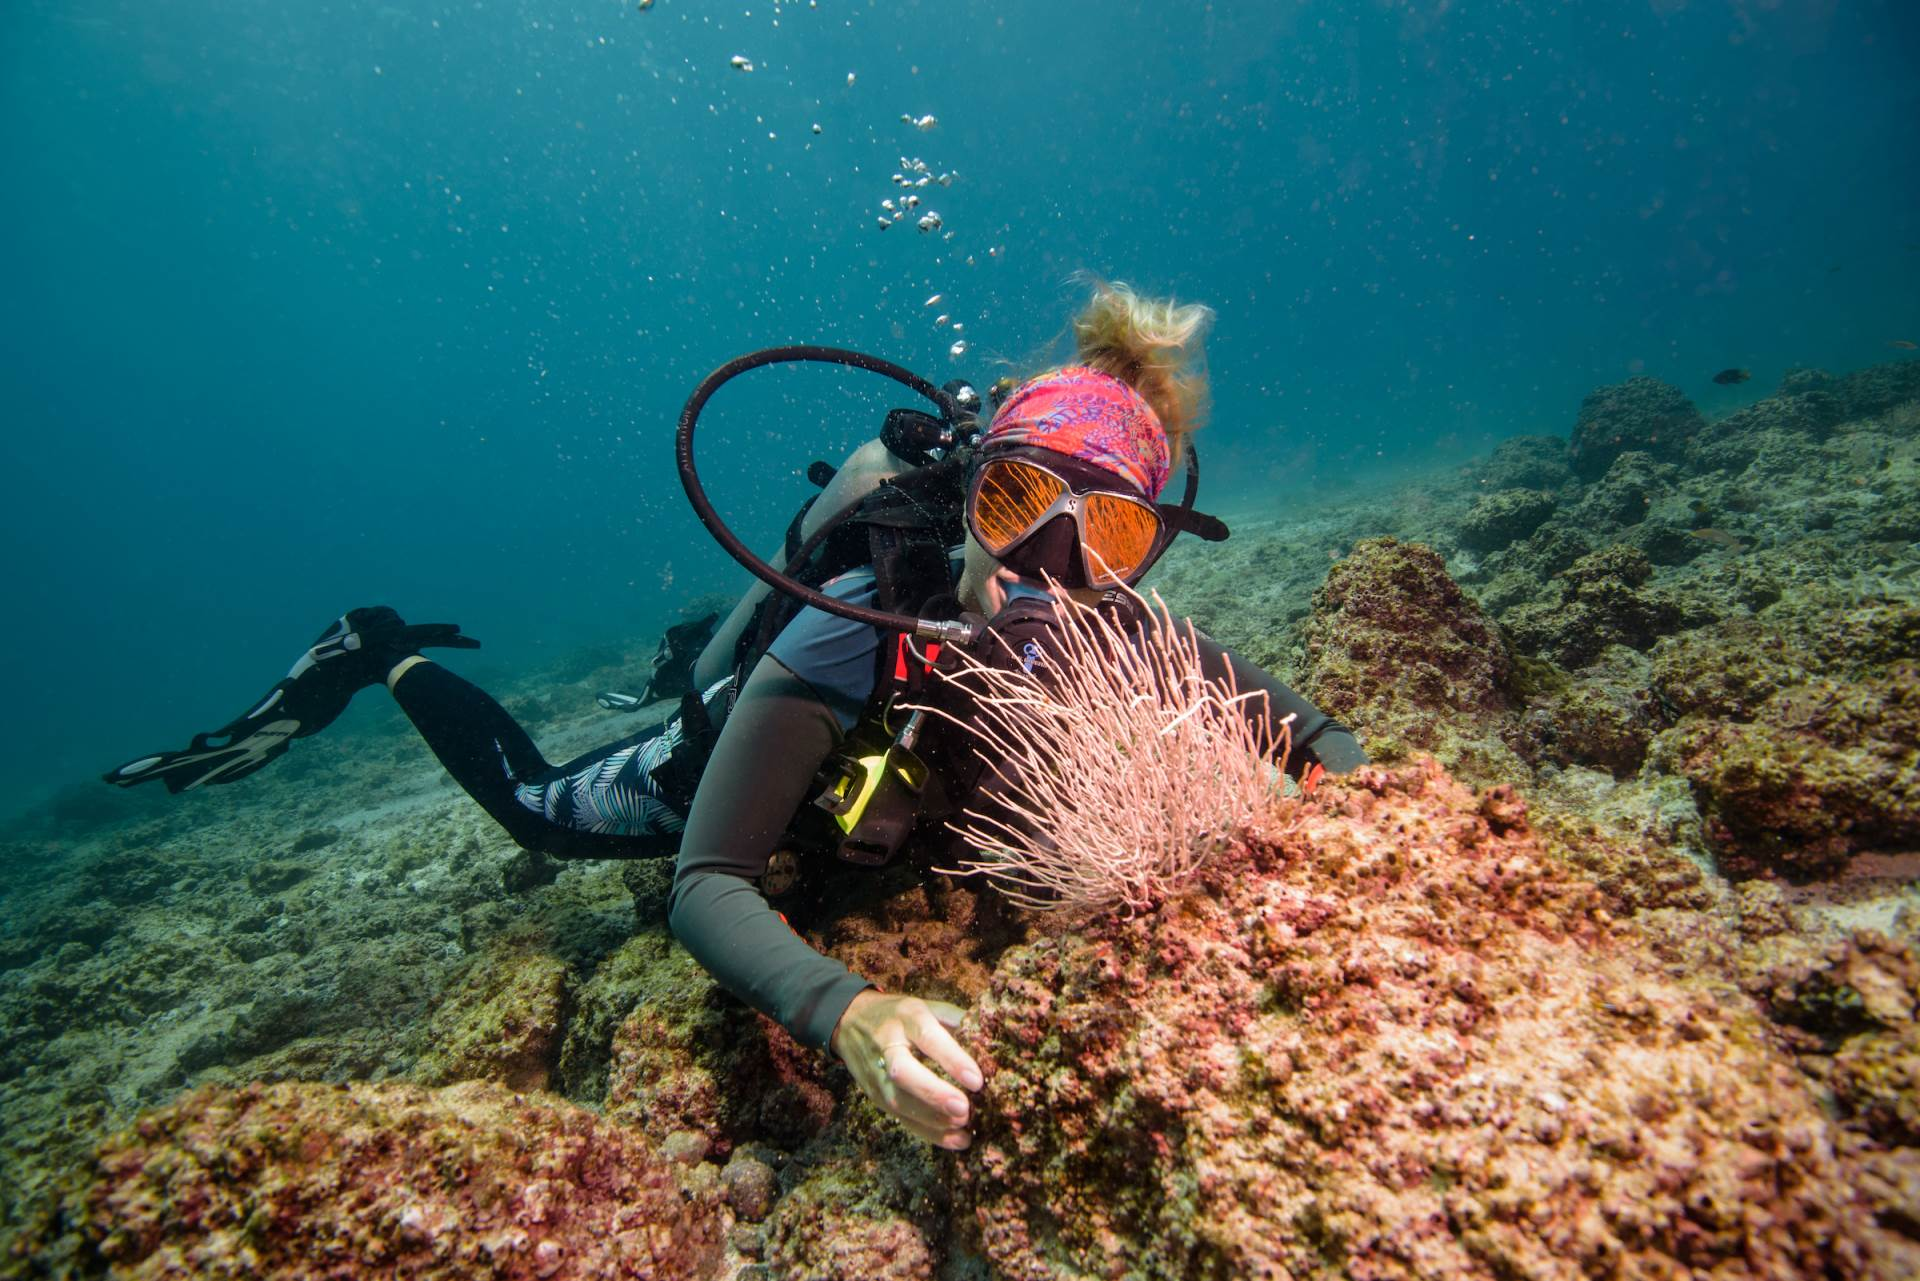 Come and enjoy diving in one of the best 10 diving sites of Costa Rica